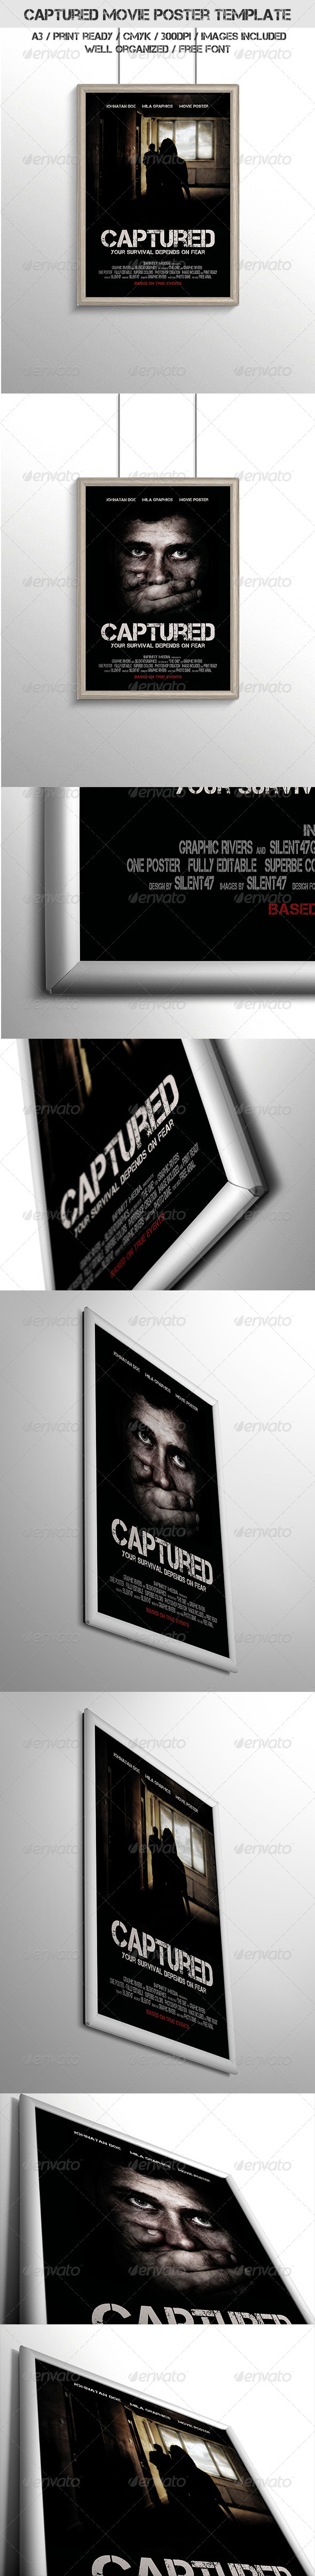 GraphicRiver Captured Movie Poster Template 6783007